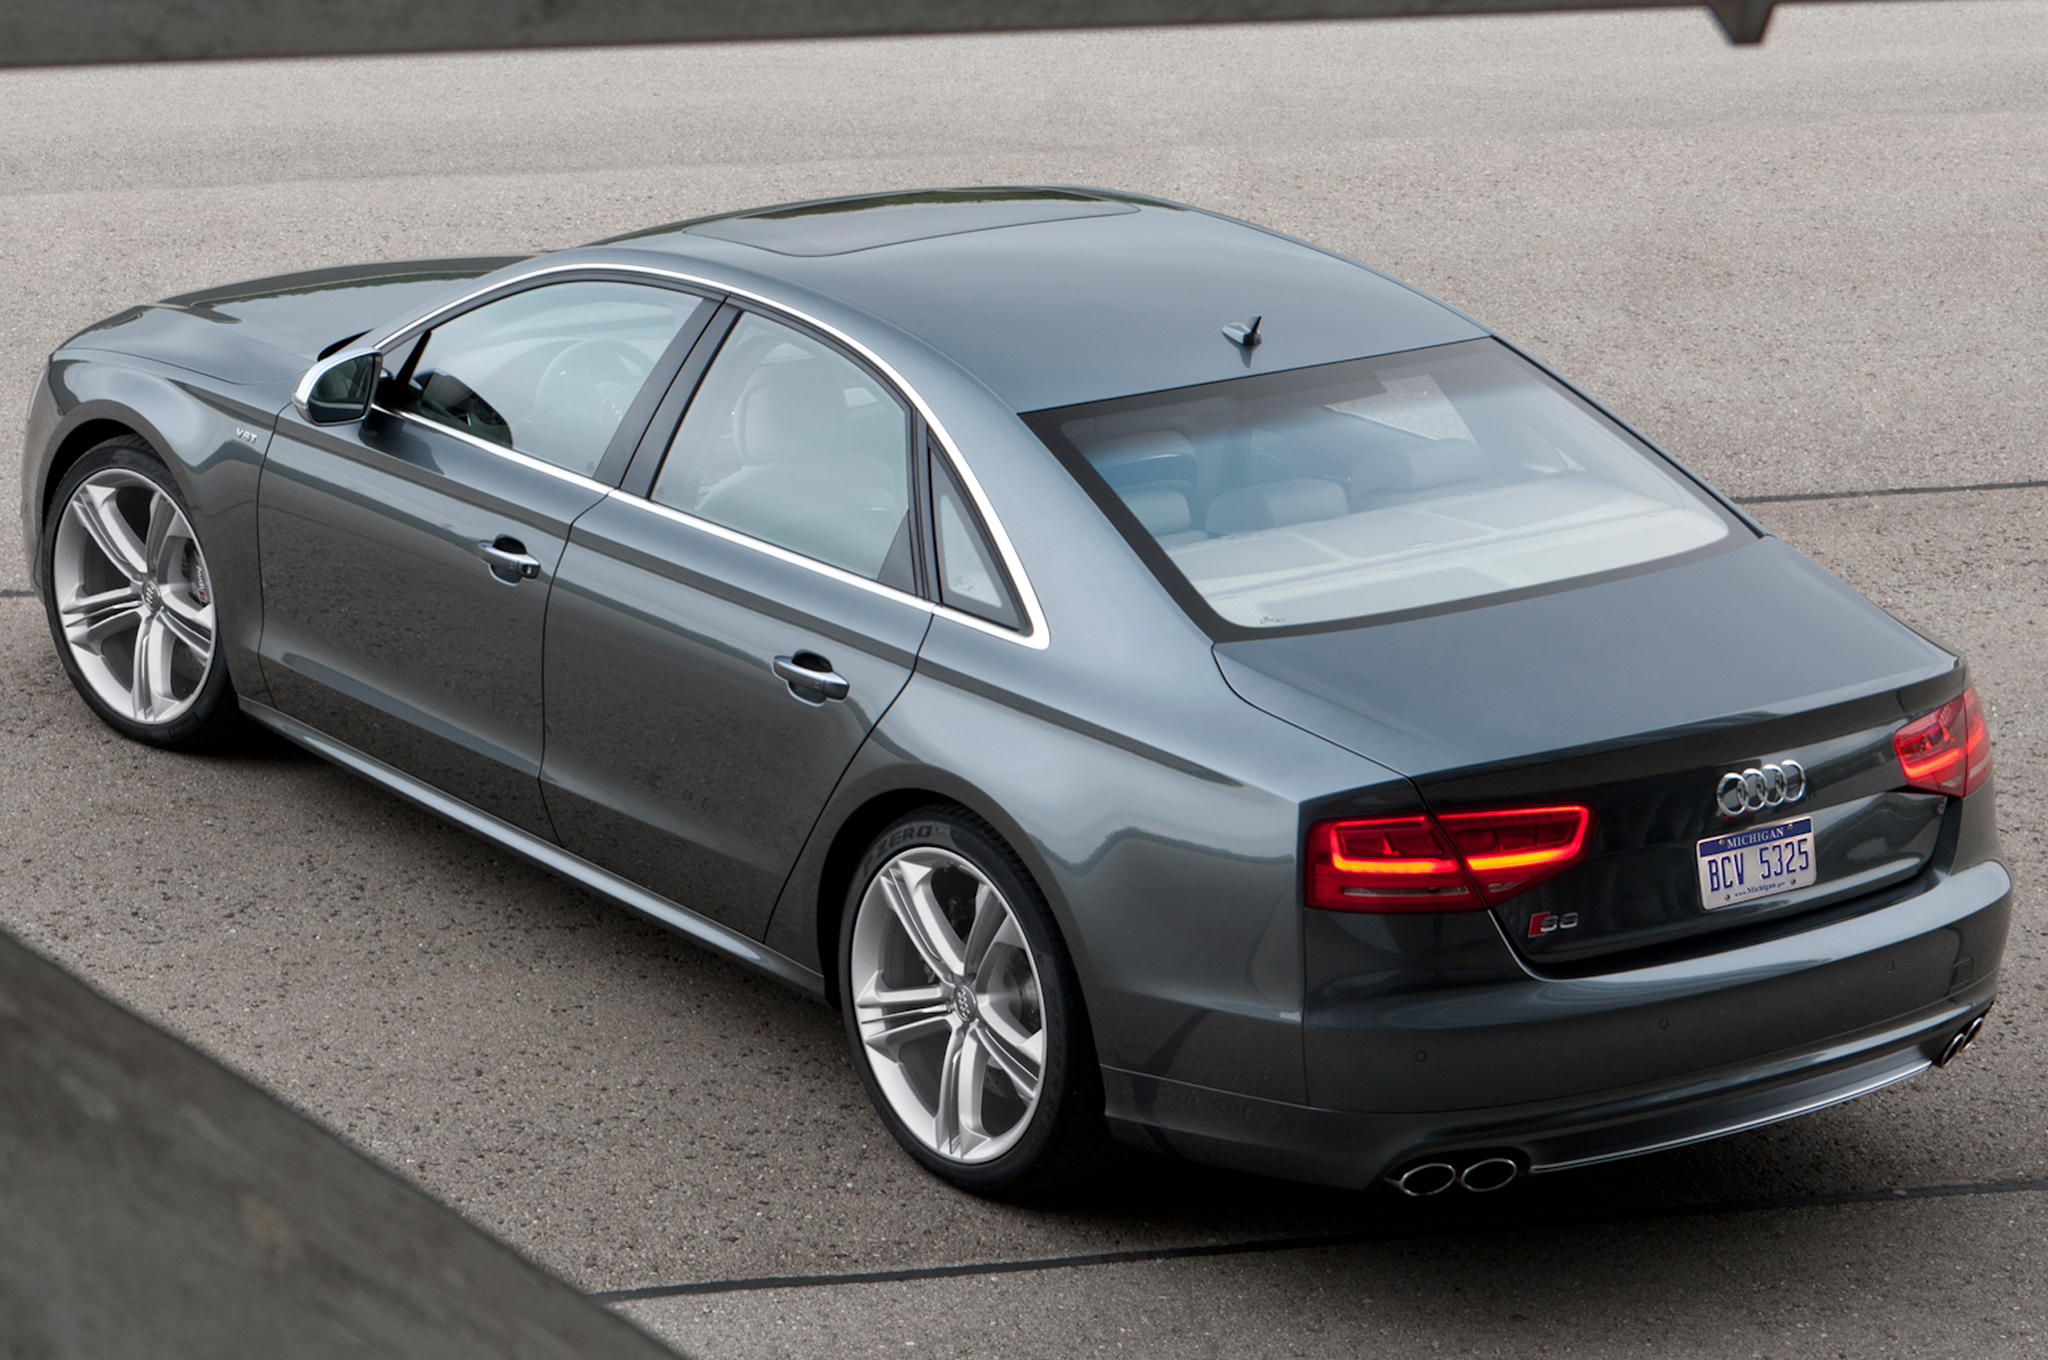 2014 audi s8 information and photos zombiedrive. Black Bedroom Furniture Sets. Home Design Ideas